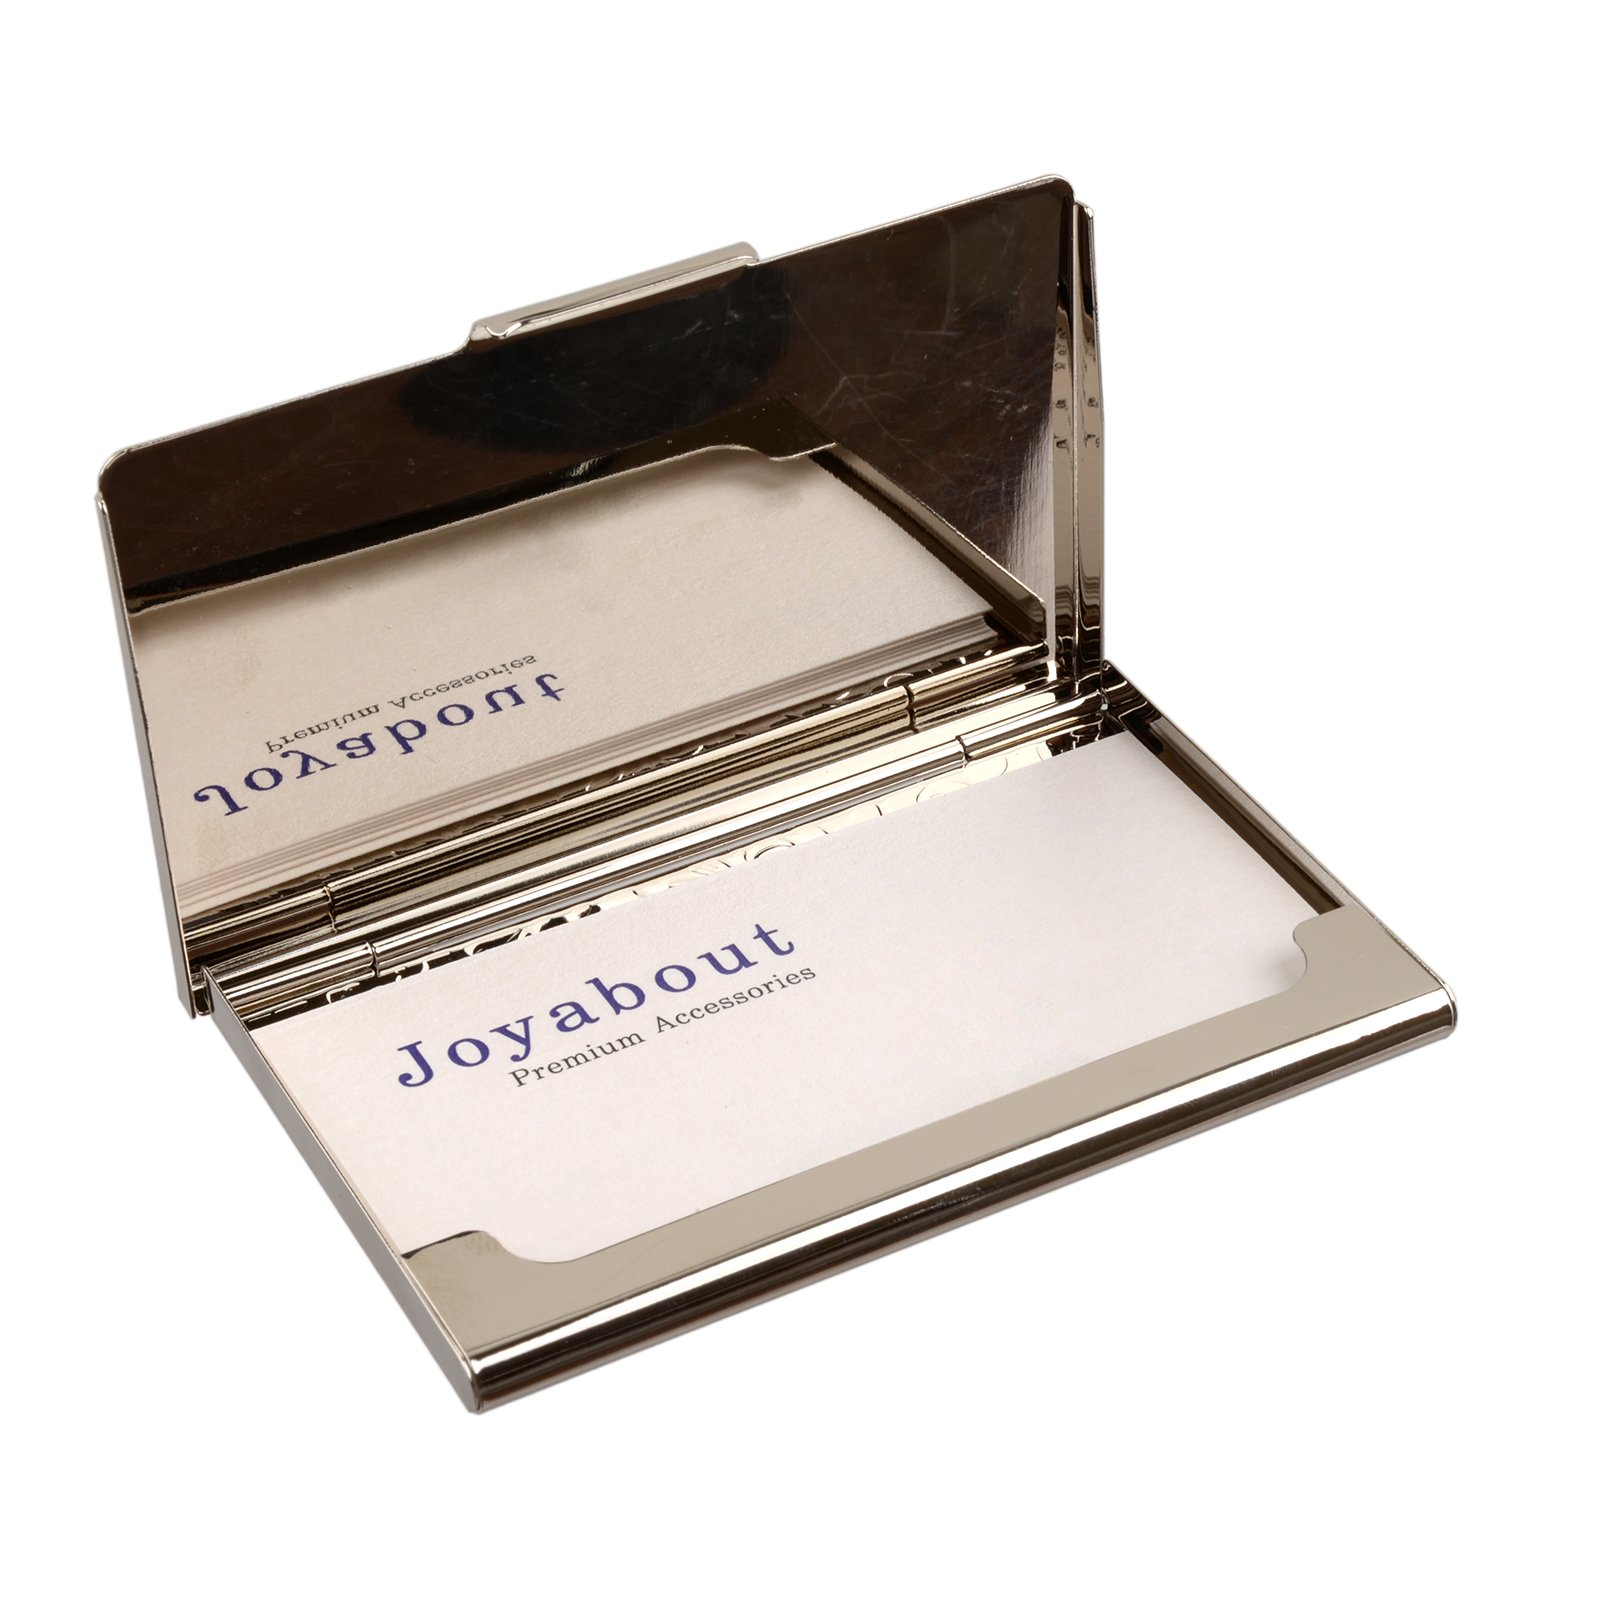 business name card holder stainless steel case Mother of Pearl Art Arabesque by MOP antique (Image #3)